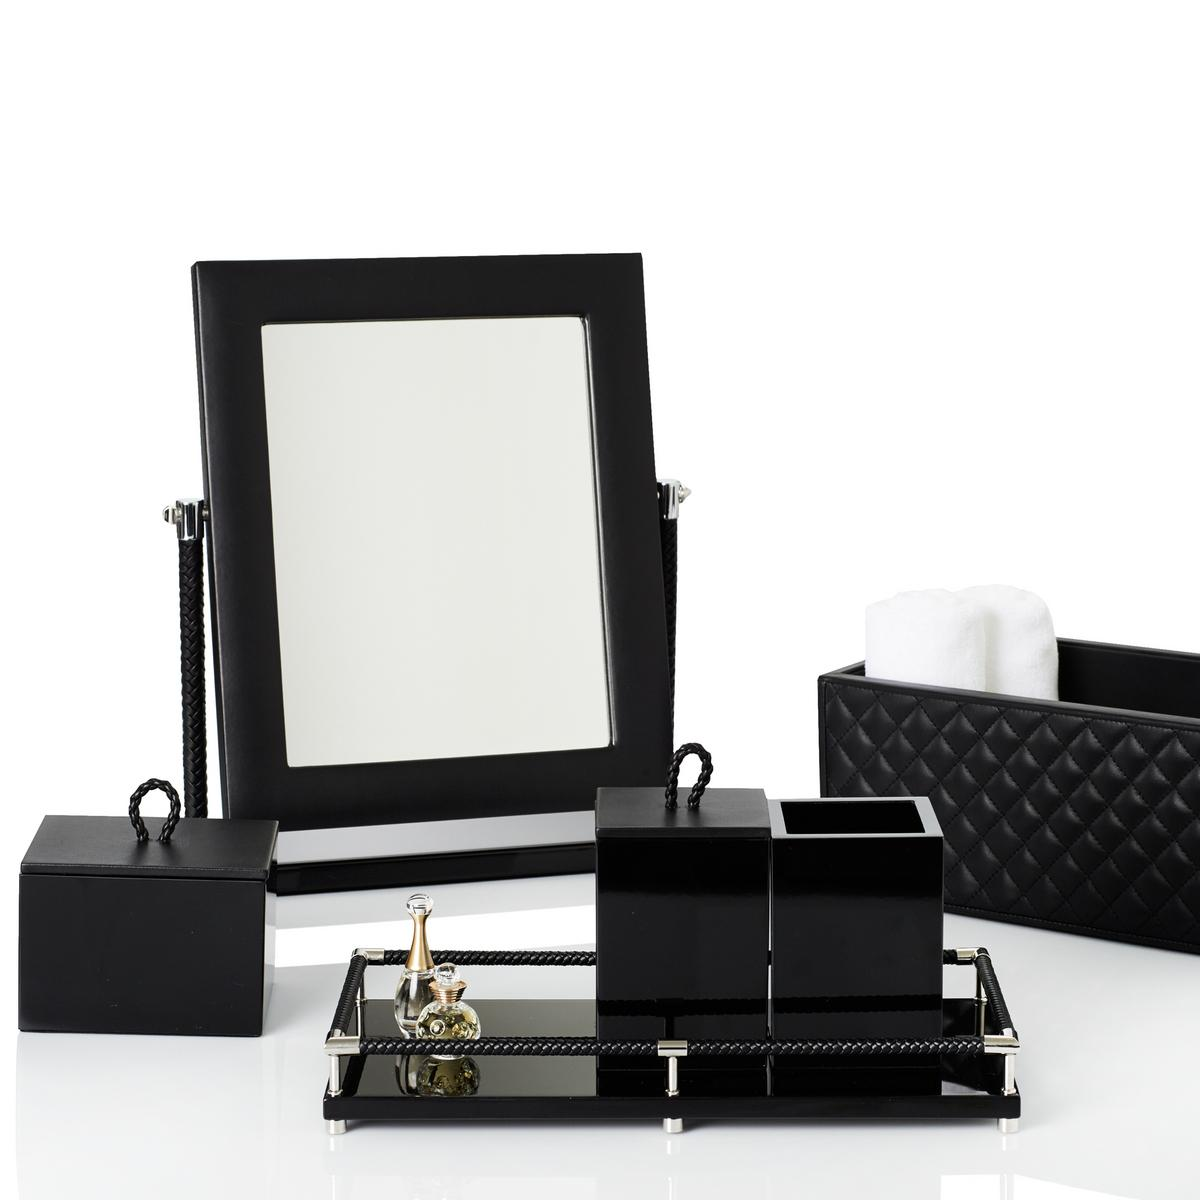 Bathroom Vanity Accessories riviere vanity bathroom accessories, black | artedona